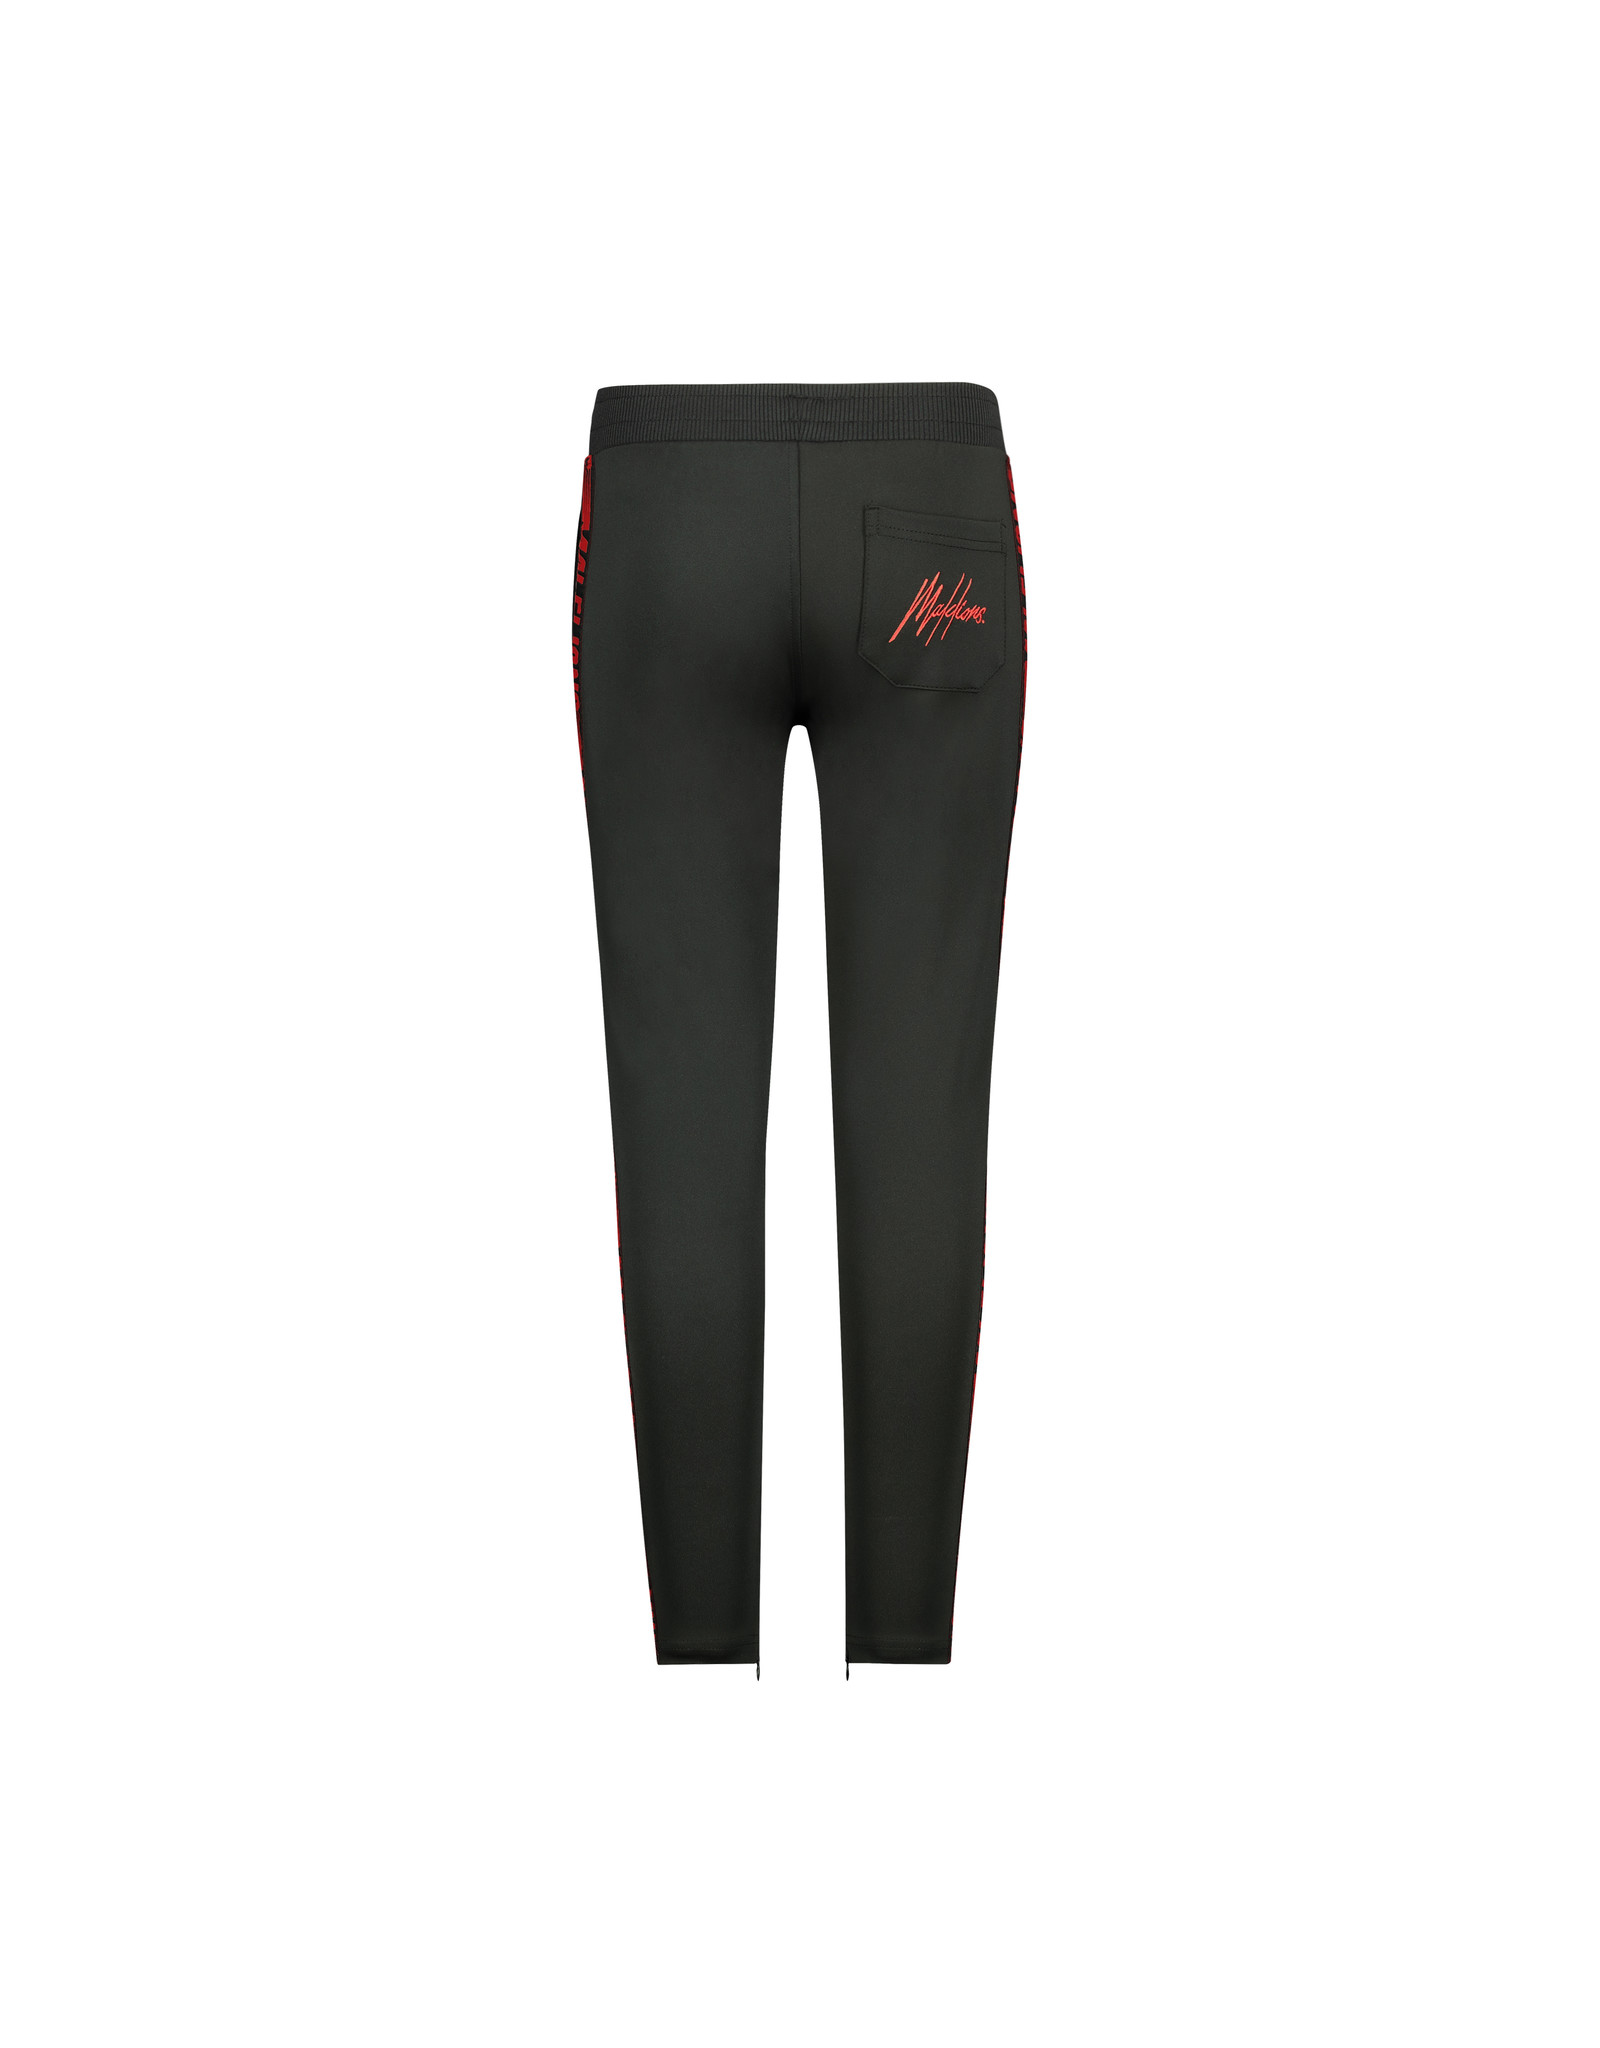 Malelions Junior Sport Warming Up Trackpants Black/Red